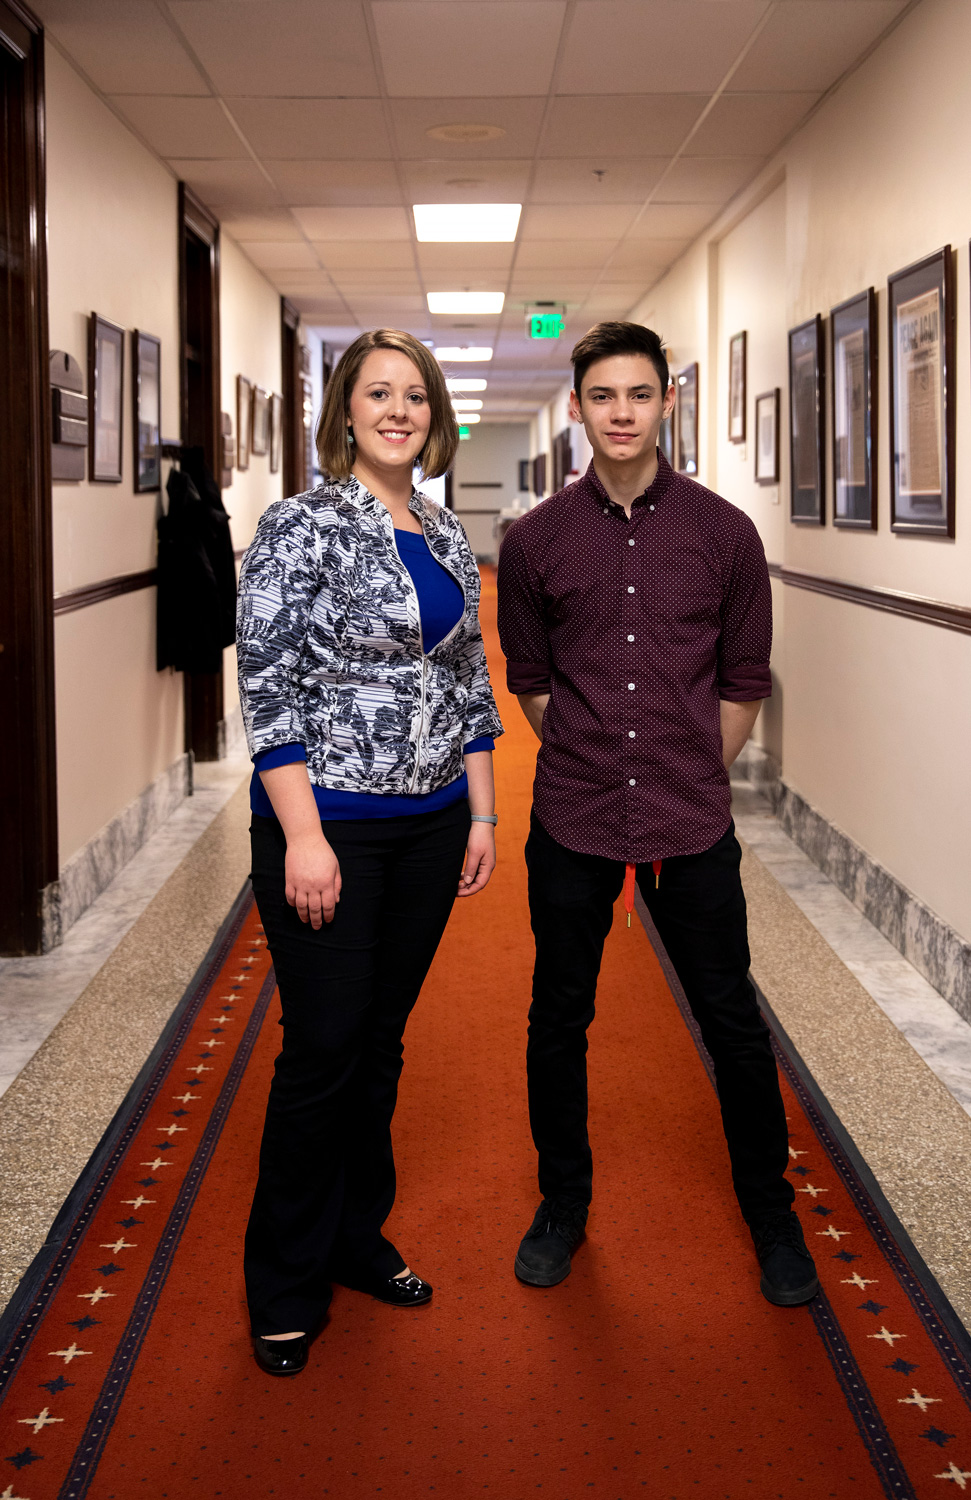 Audrey Stack, Clinic Director for the Alaska Center for Natural Medicine, and Gavin McGahan, 11th grade student with IDEA, both visiting from district 5 for the Rotary Youth Leadership Awards (RYLA)